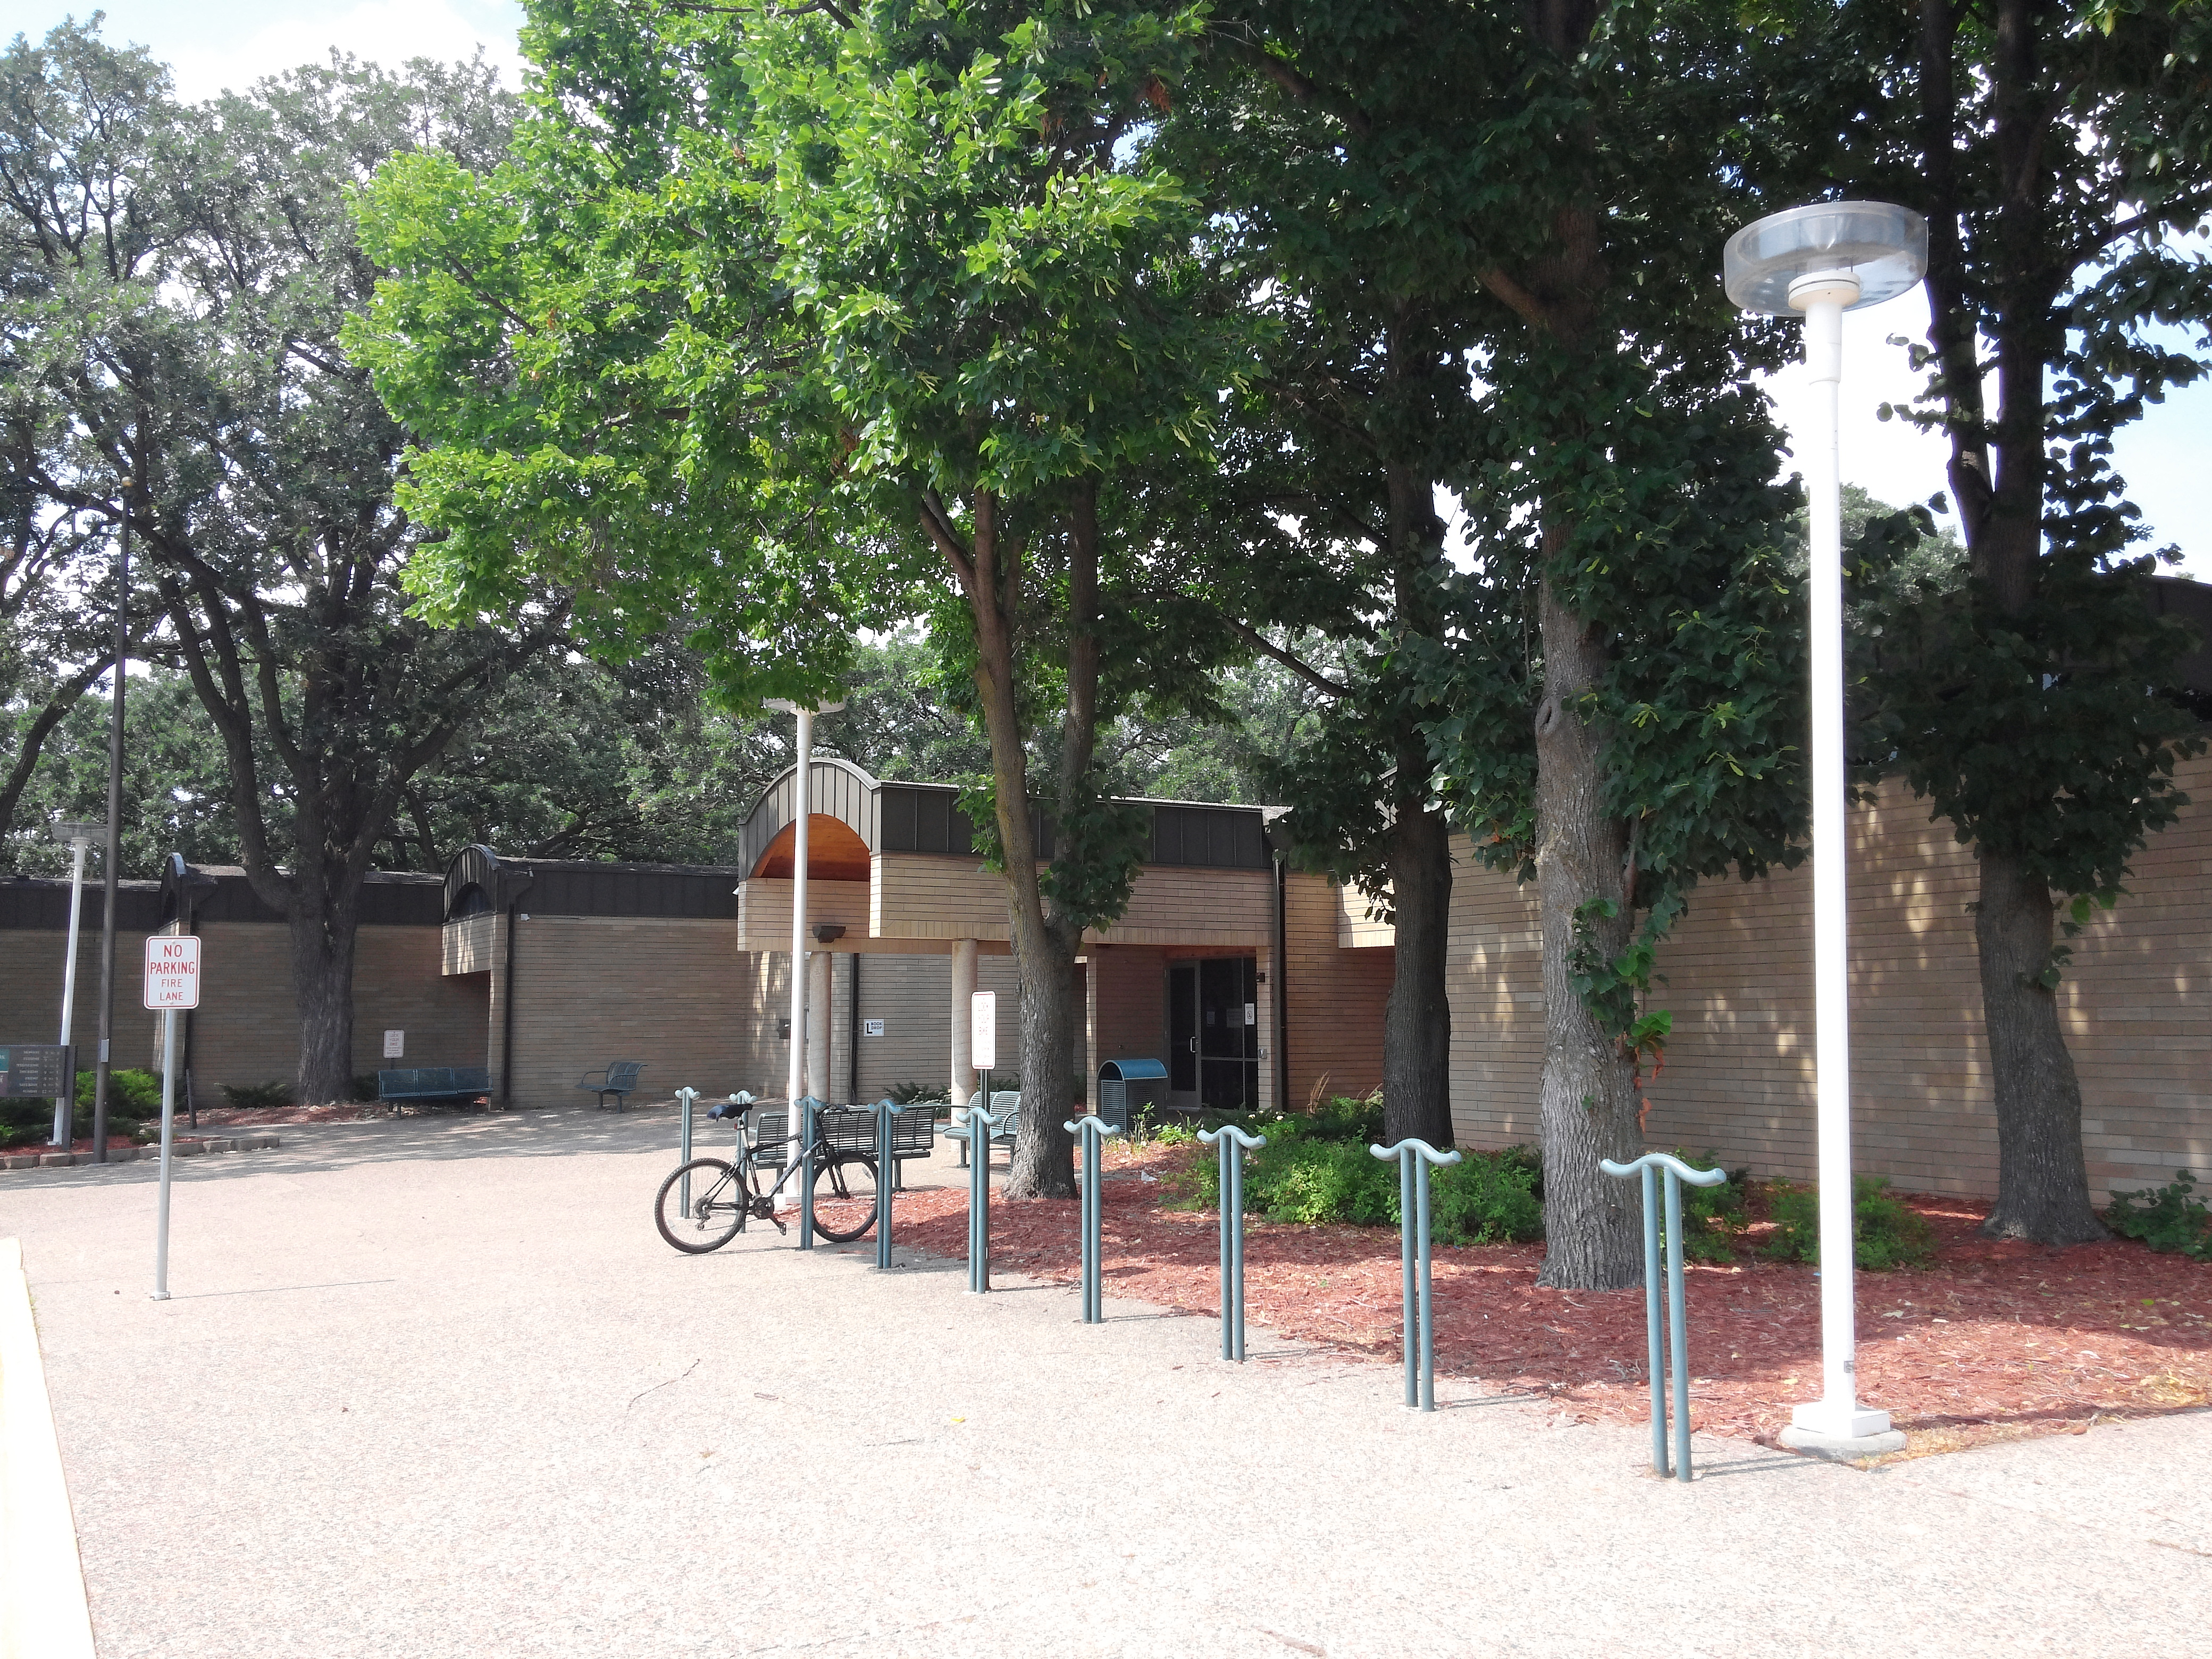 The Augsburg Park Library exterior.